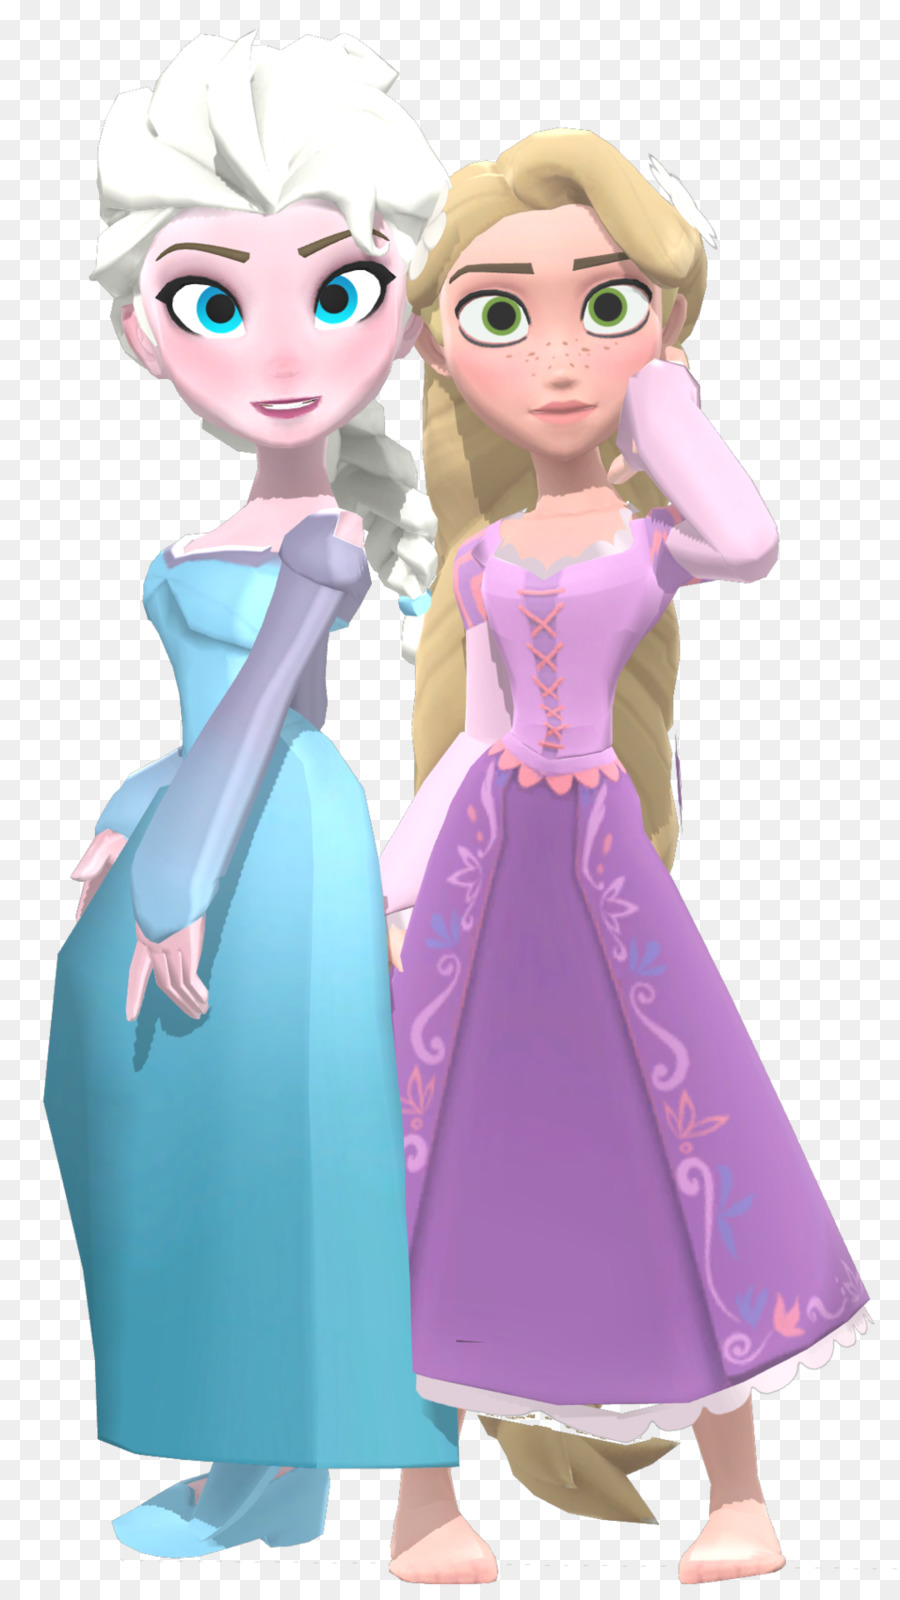 Tangled Frozen combined and